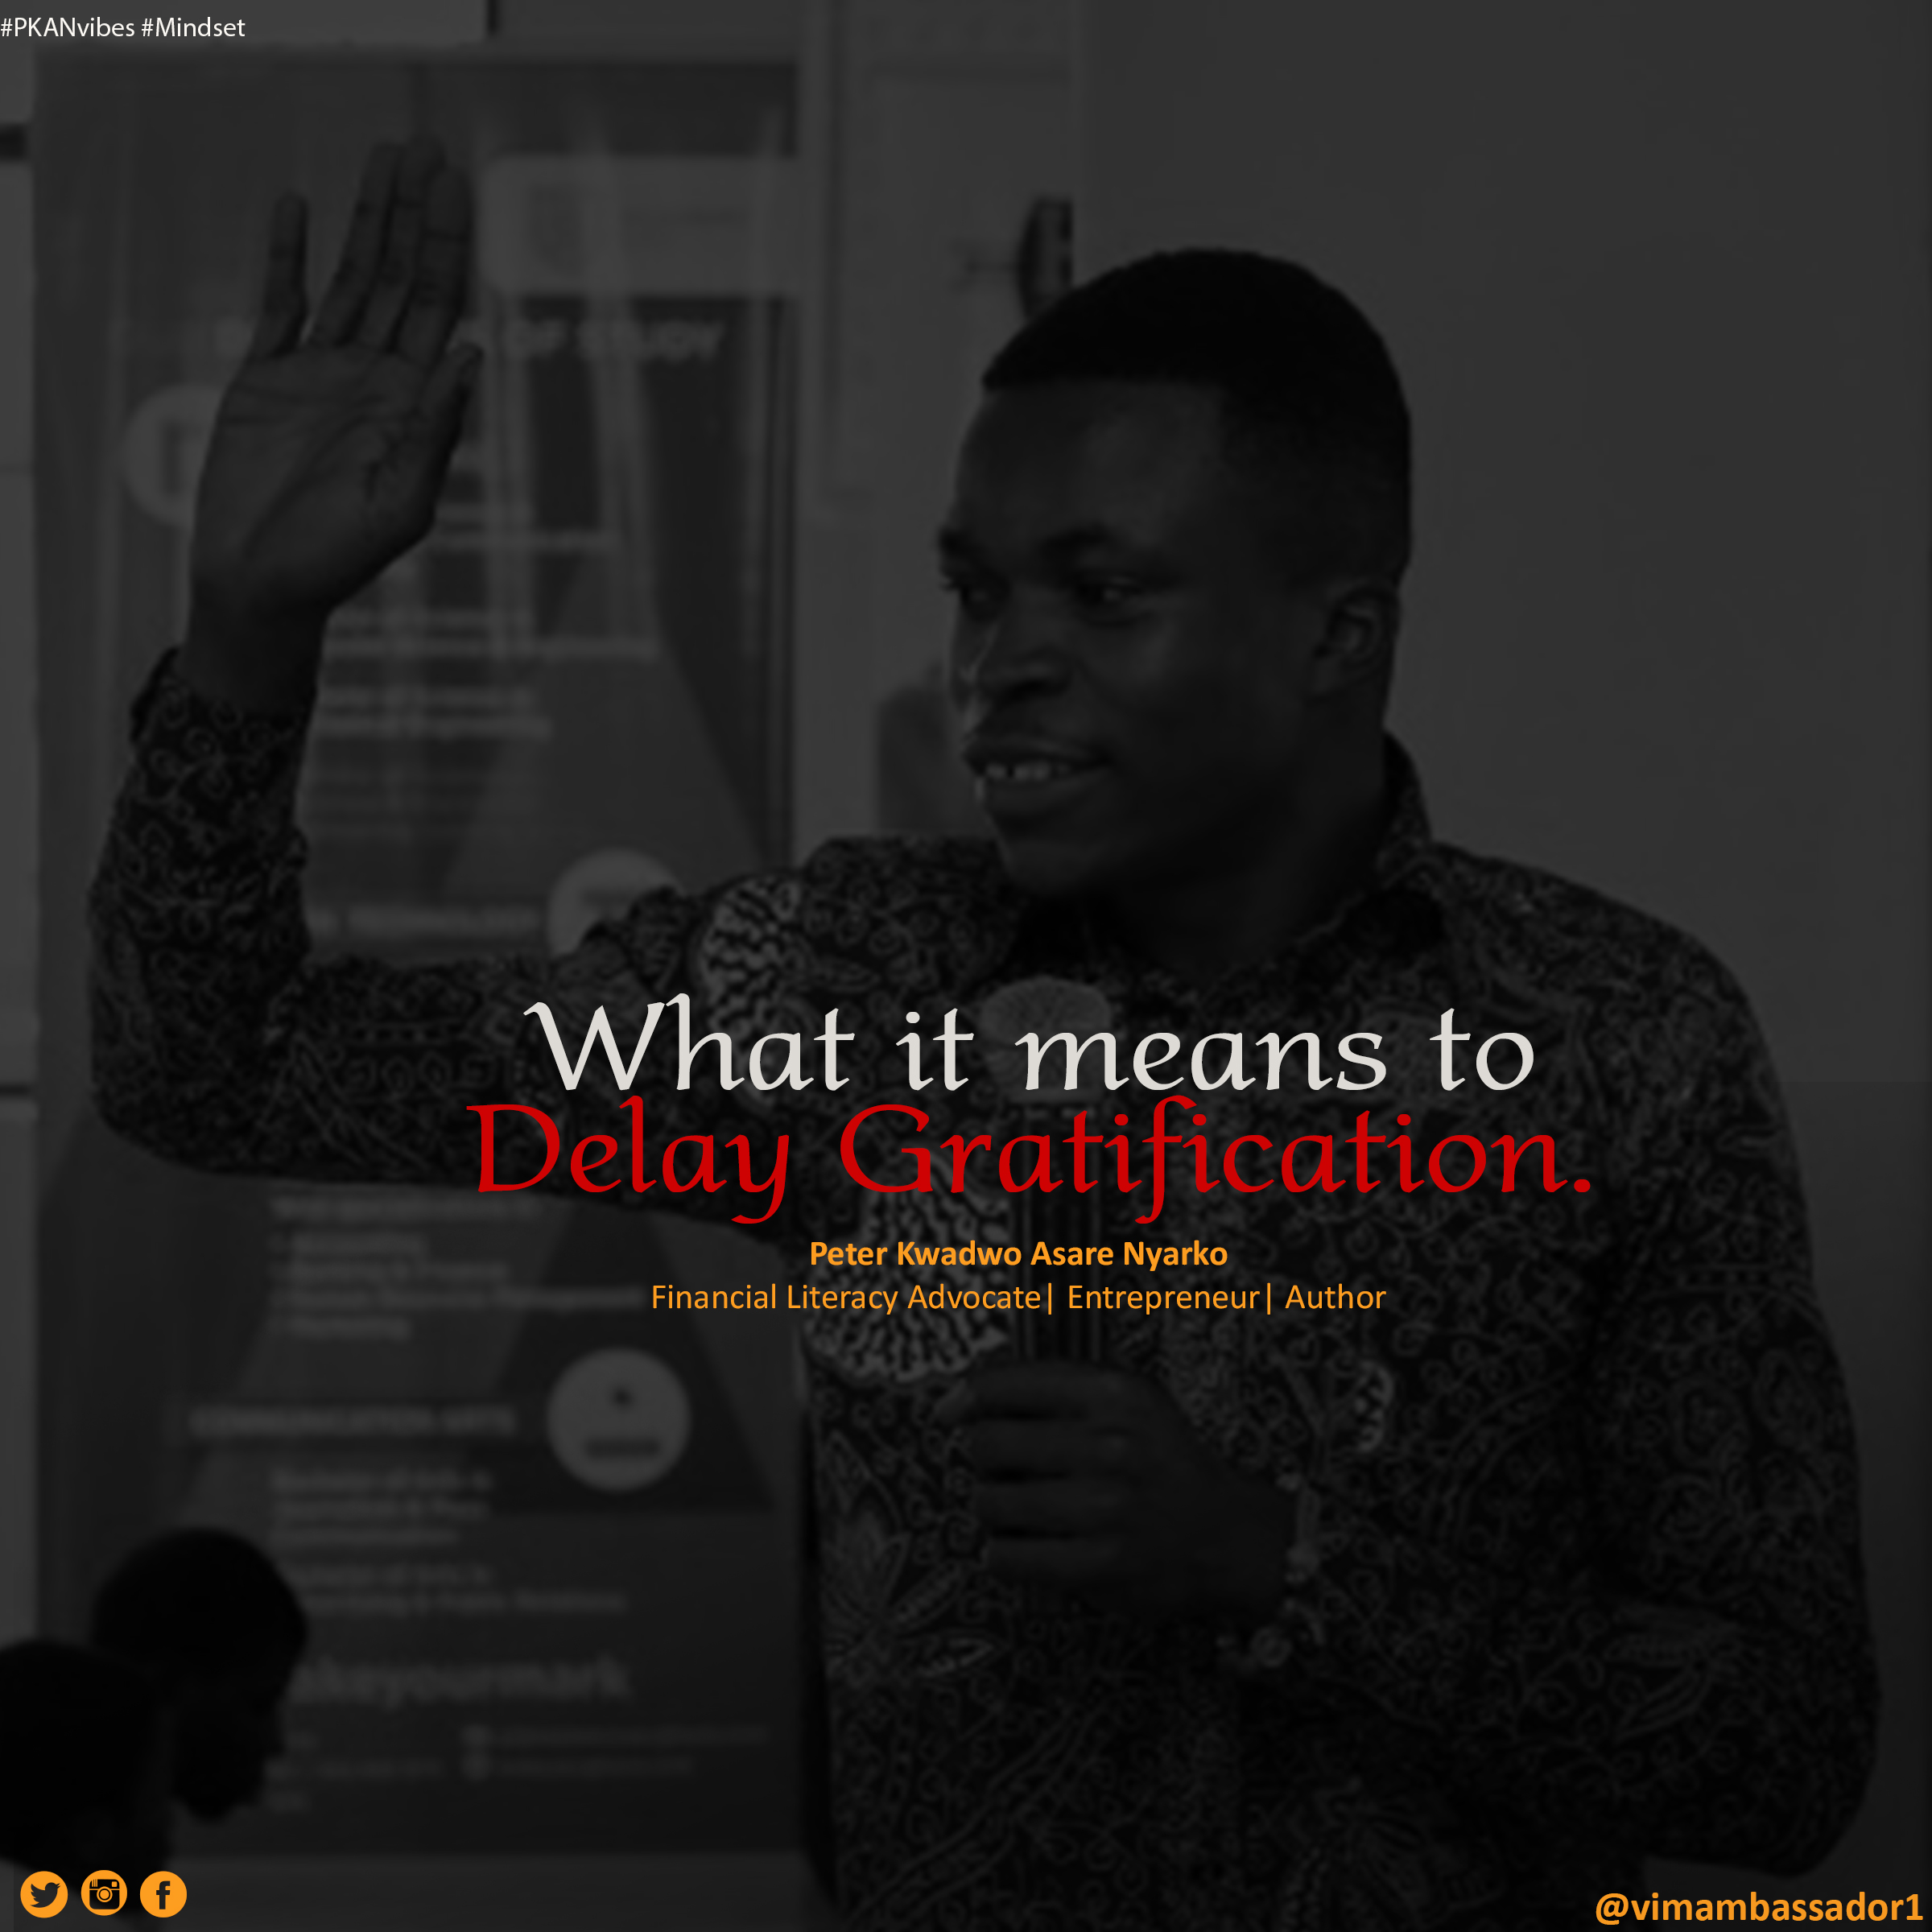 What it means to Delay Gratification